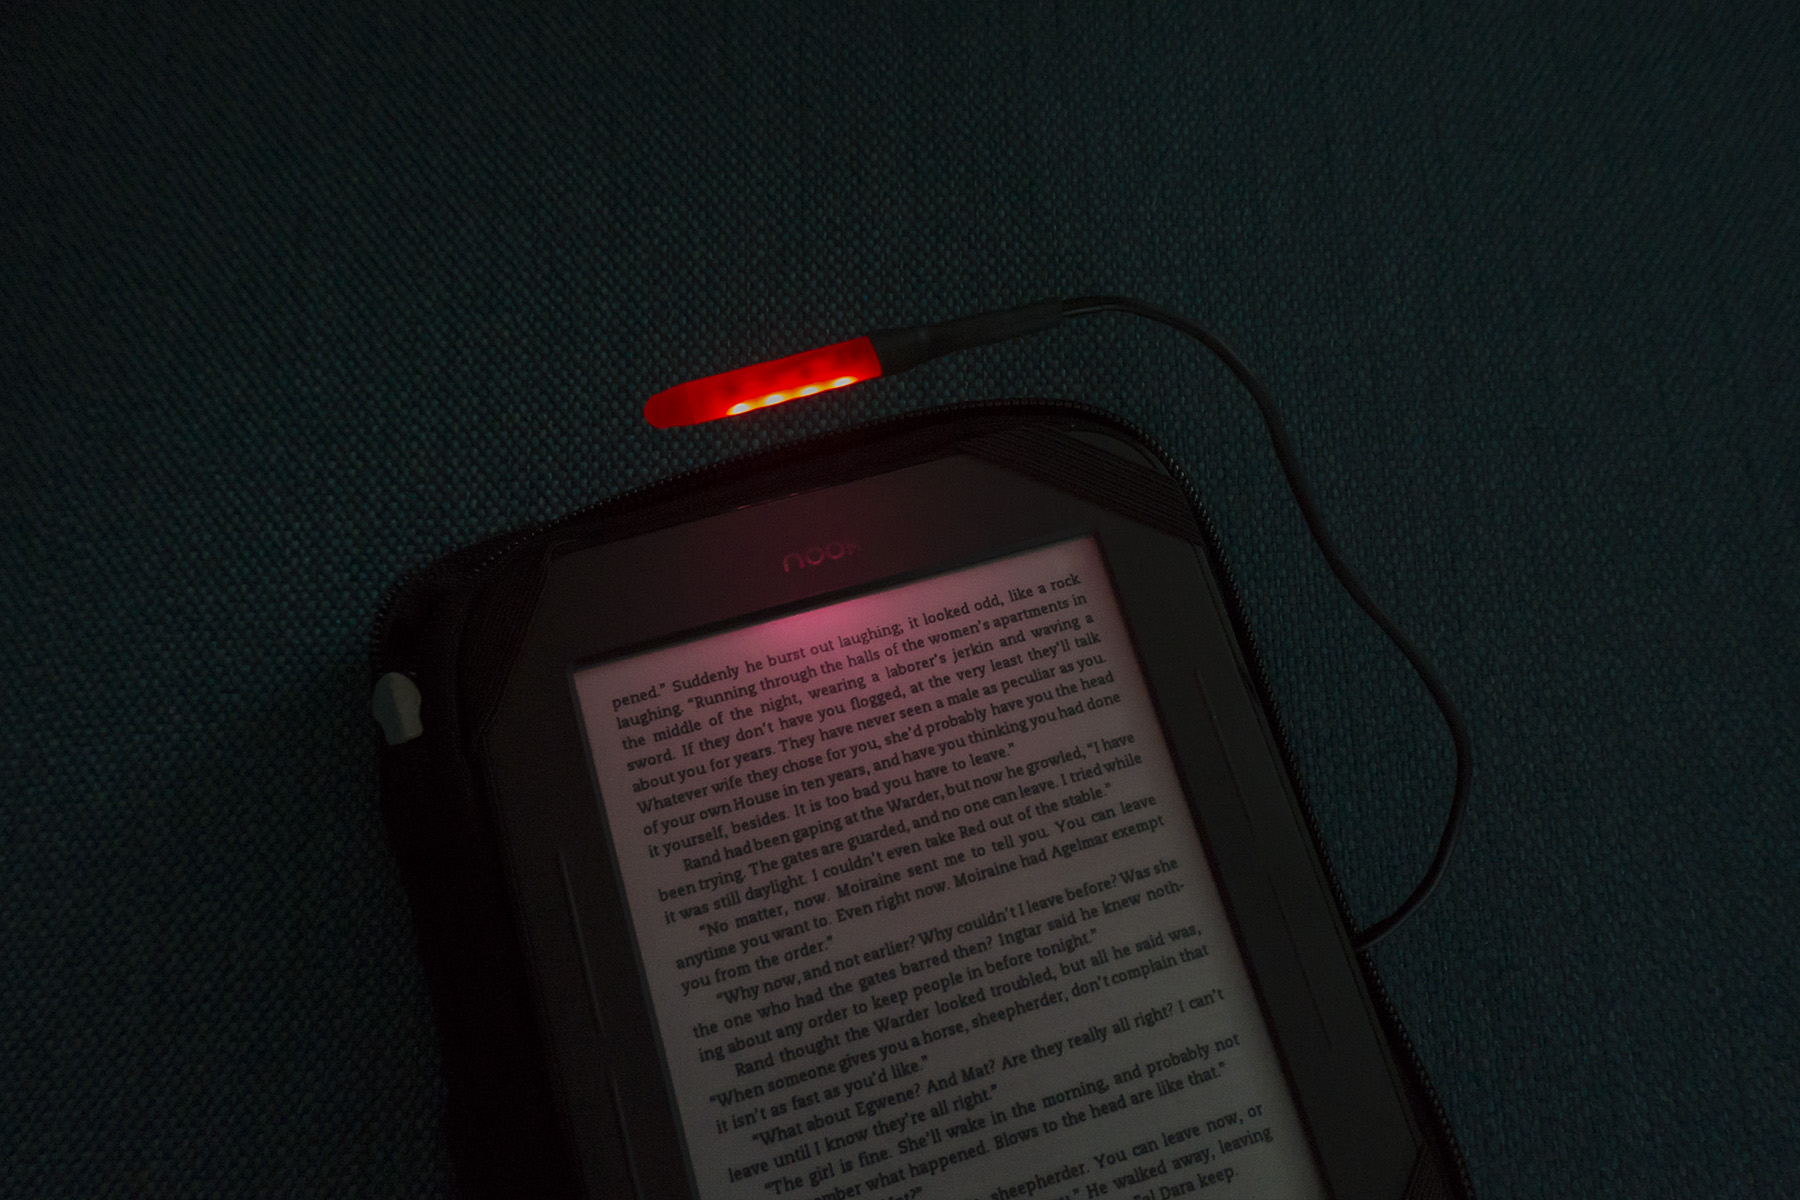 low-current lamp red led diode book light e-book handmade